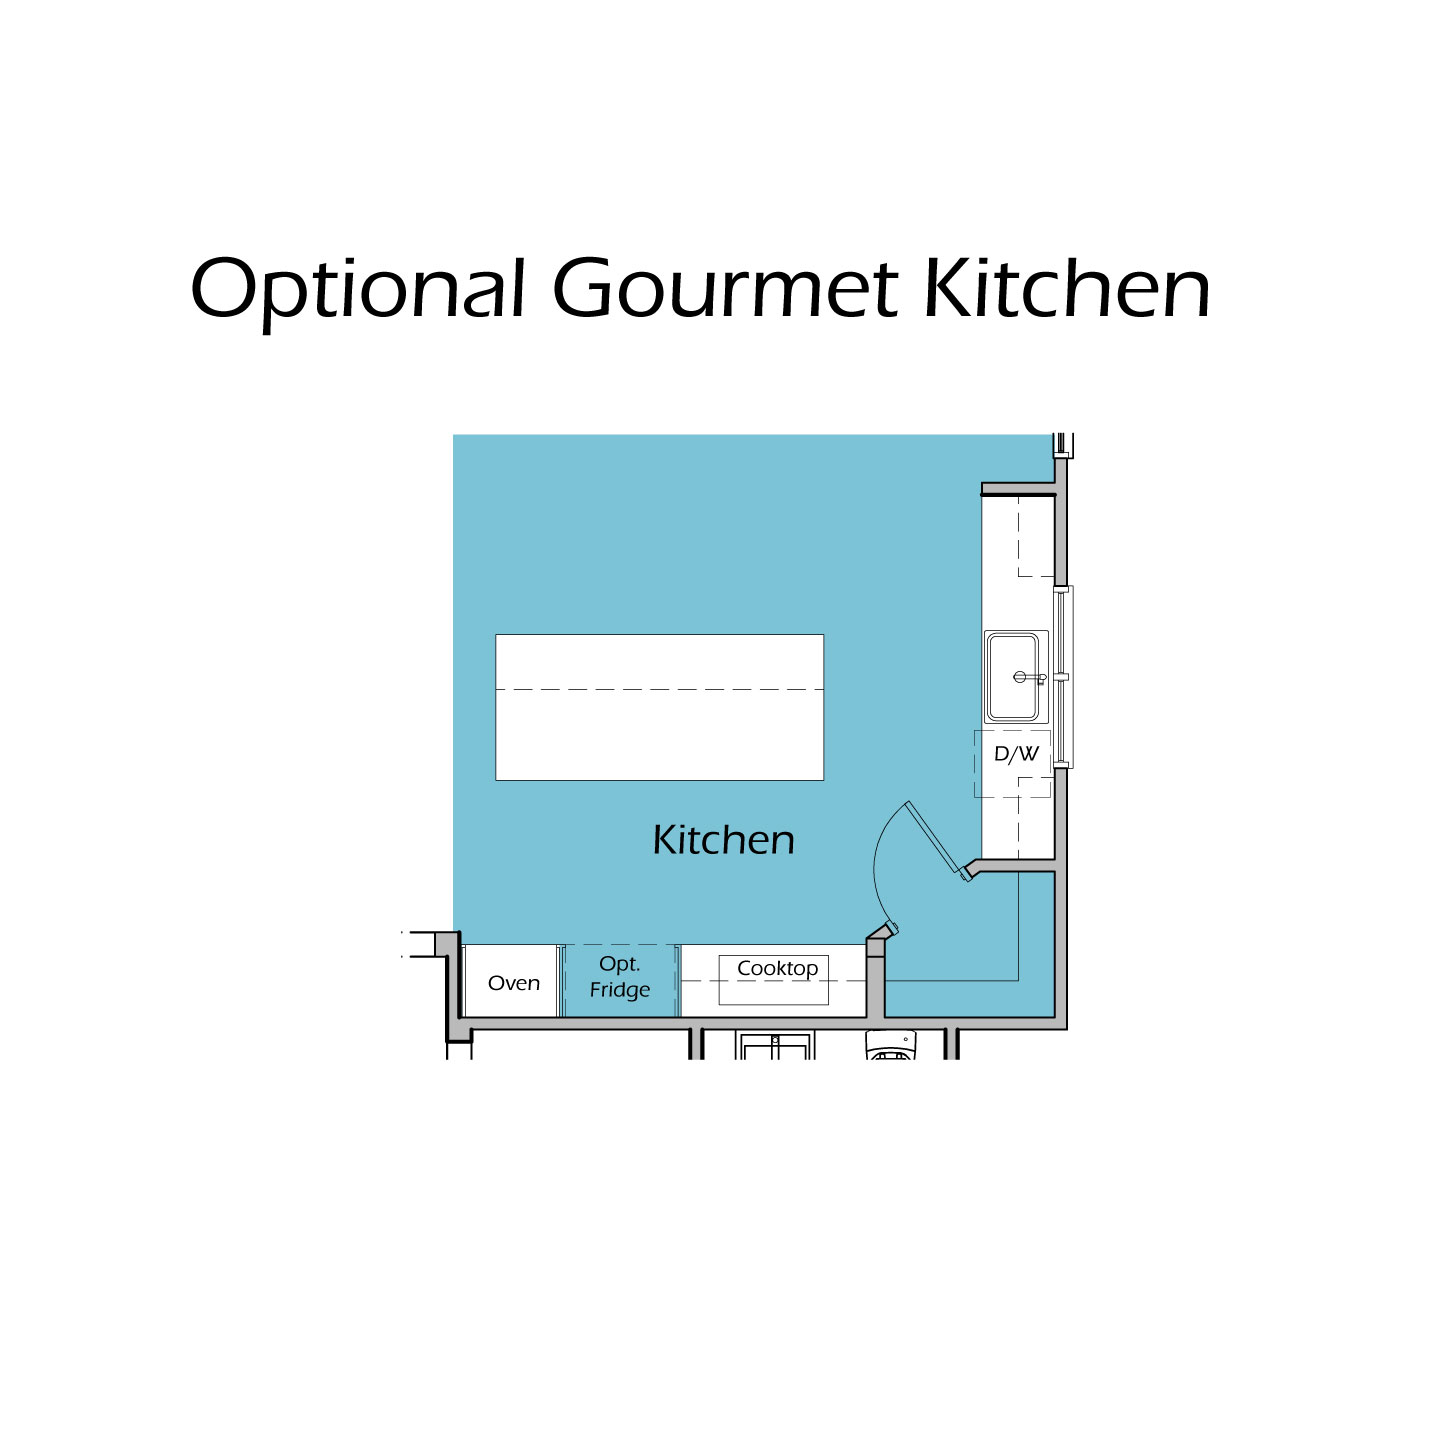 Heartland Plan T3 Gourmet Kitchen Option